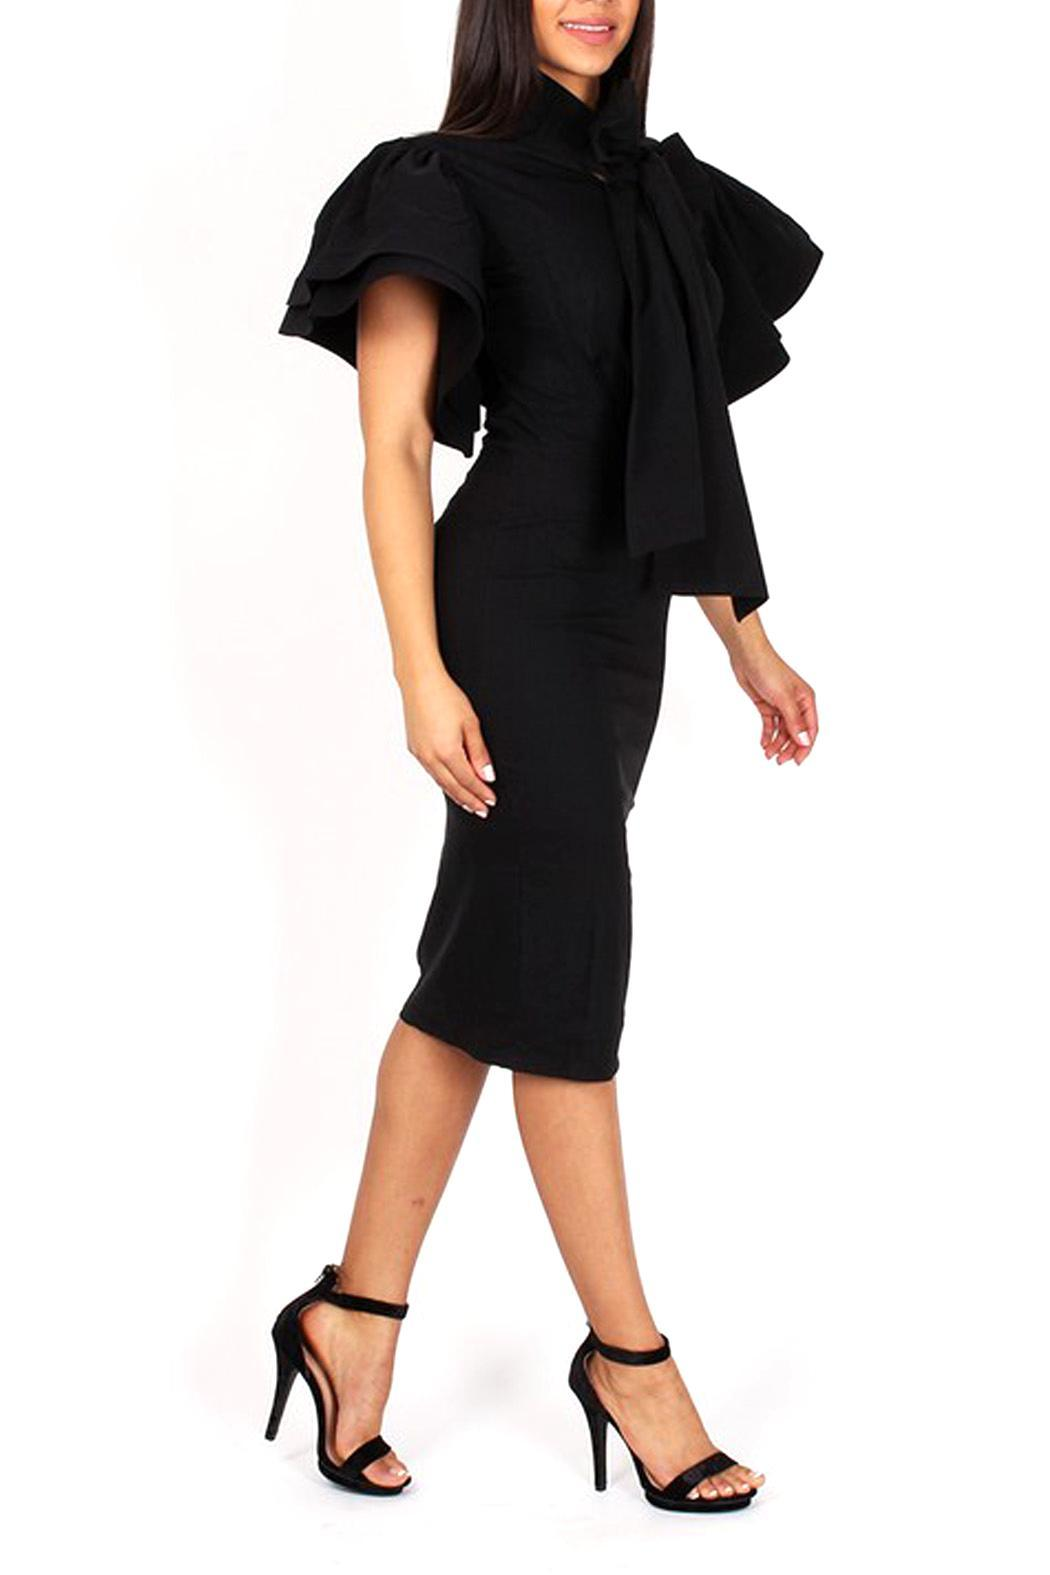 Eien Bow Tie Dress from South Carolina by Holictique ...